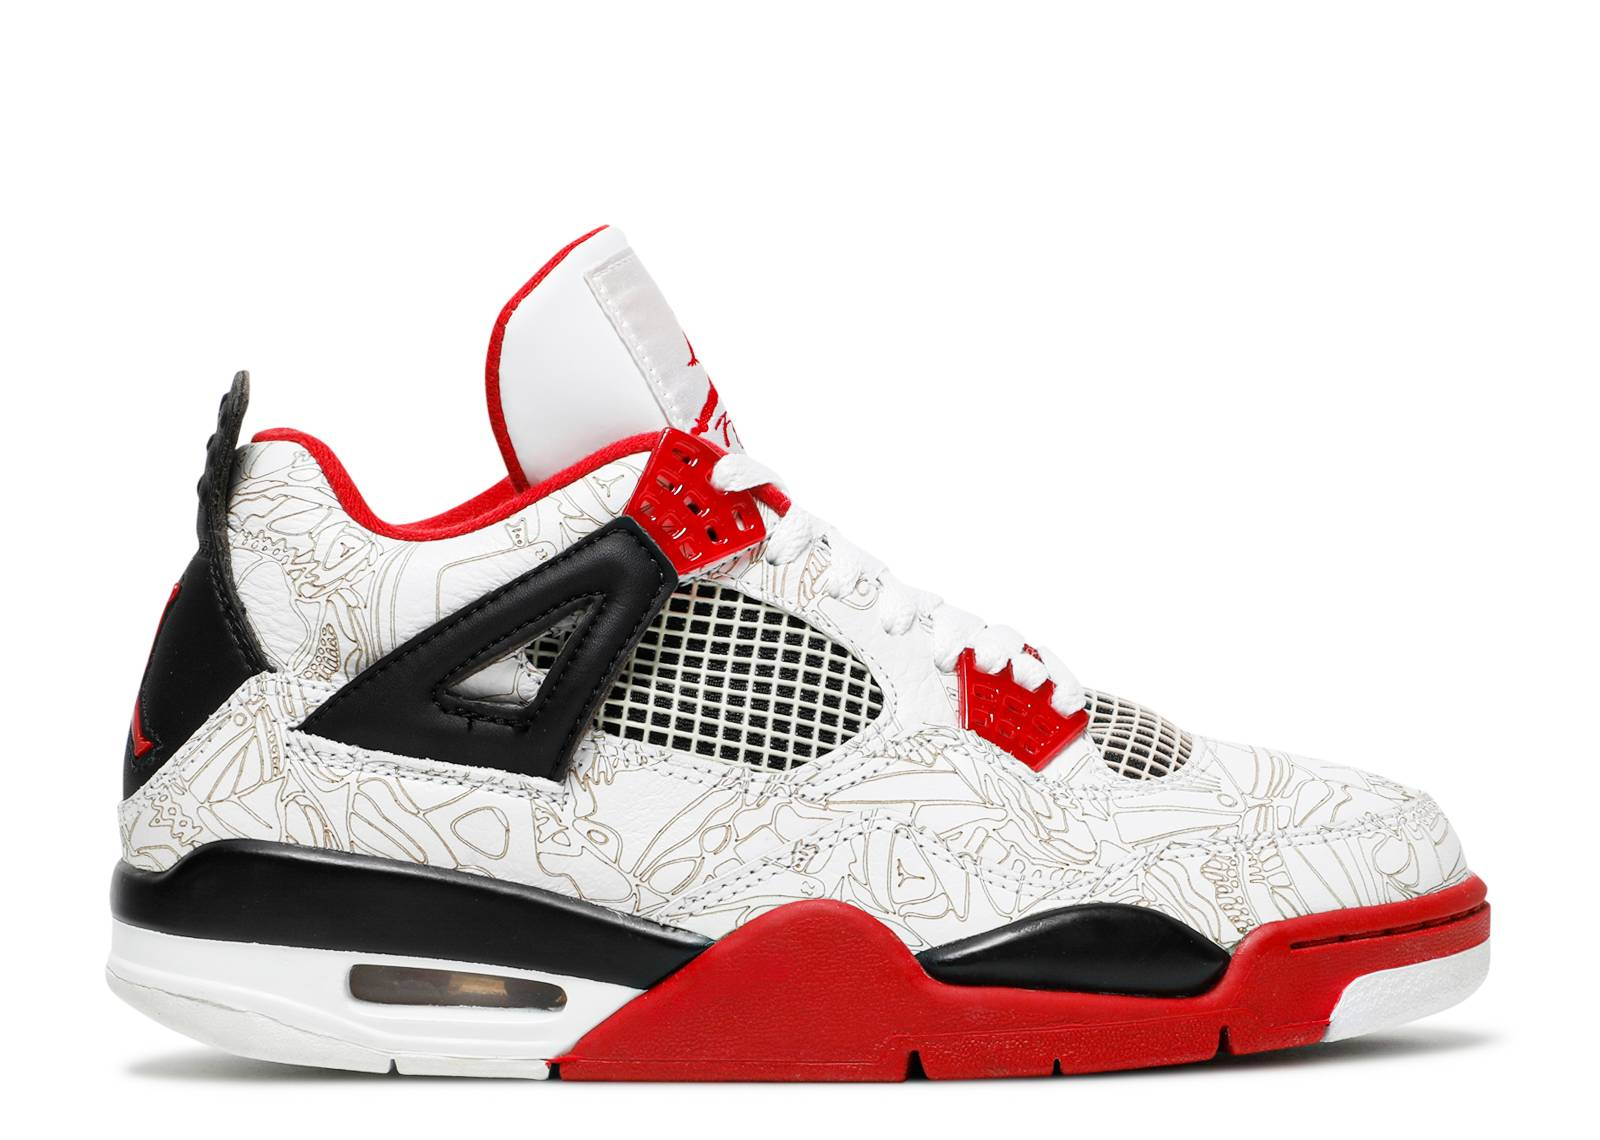 4adfae3b69d6d6 Air Jordan 4 Retro